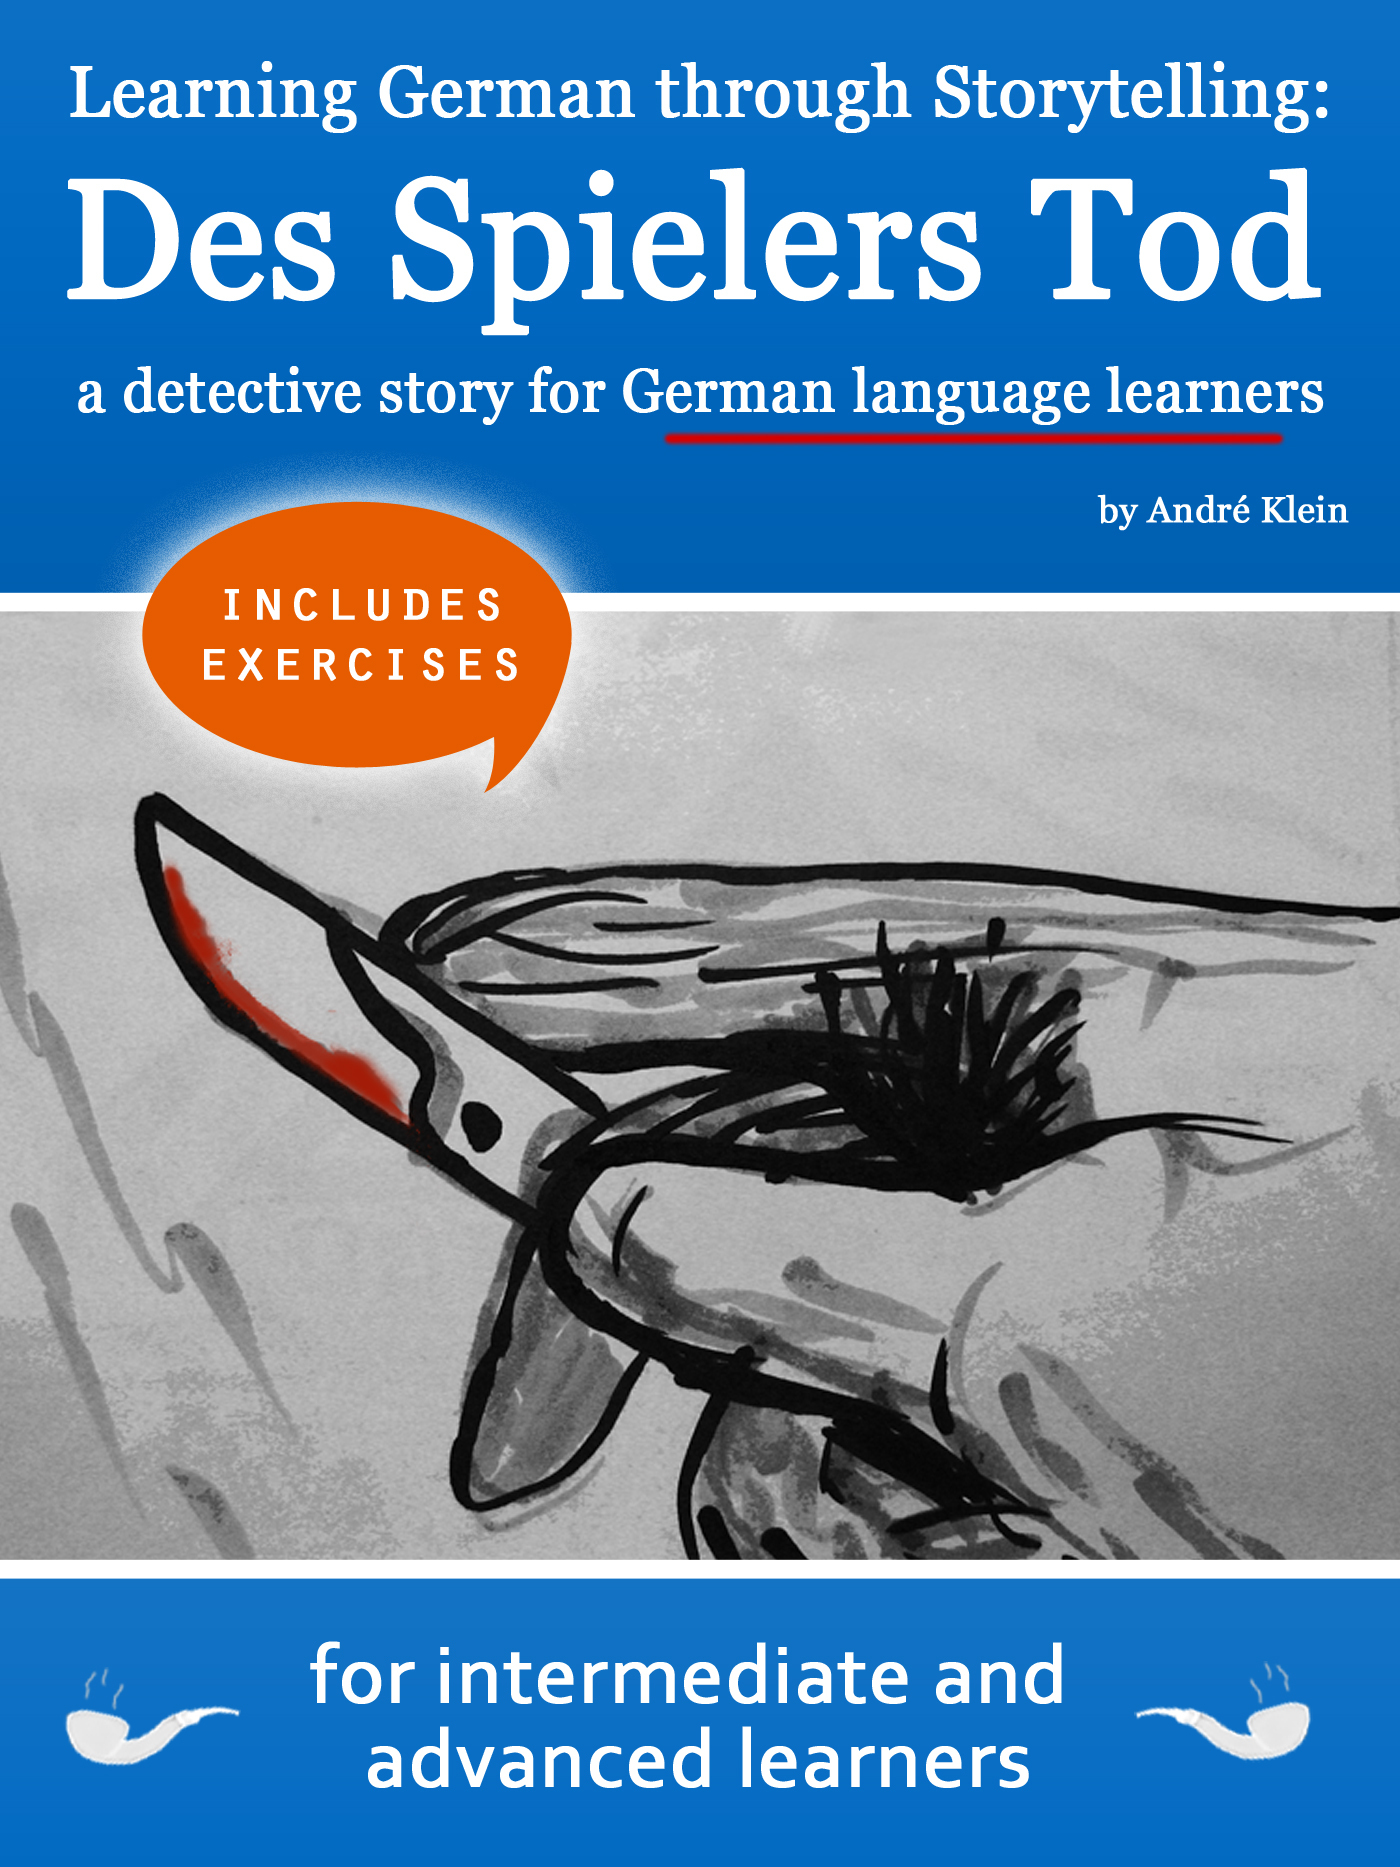 Learning German through Storytelling: Des Spielers Tod - a detective story for German language learners (includes exercises) for intermediate and advanced